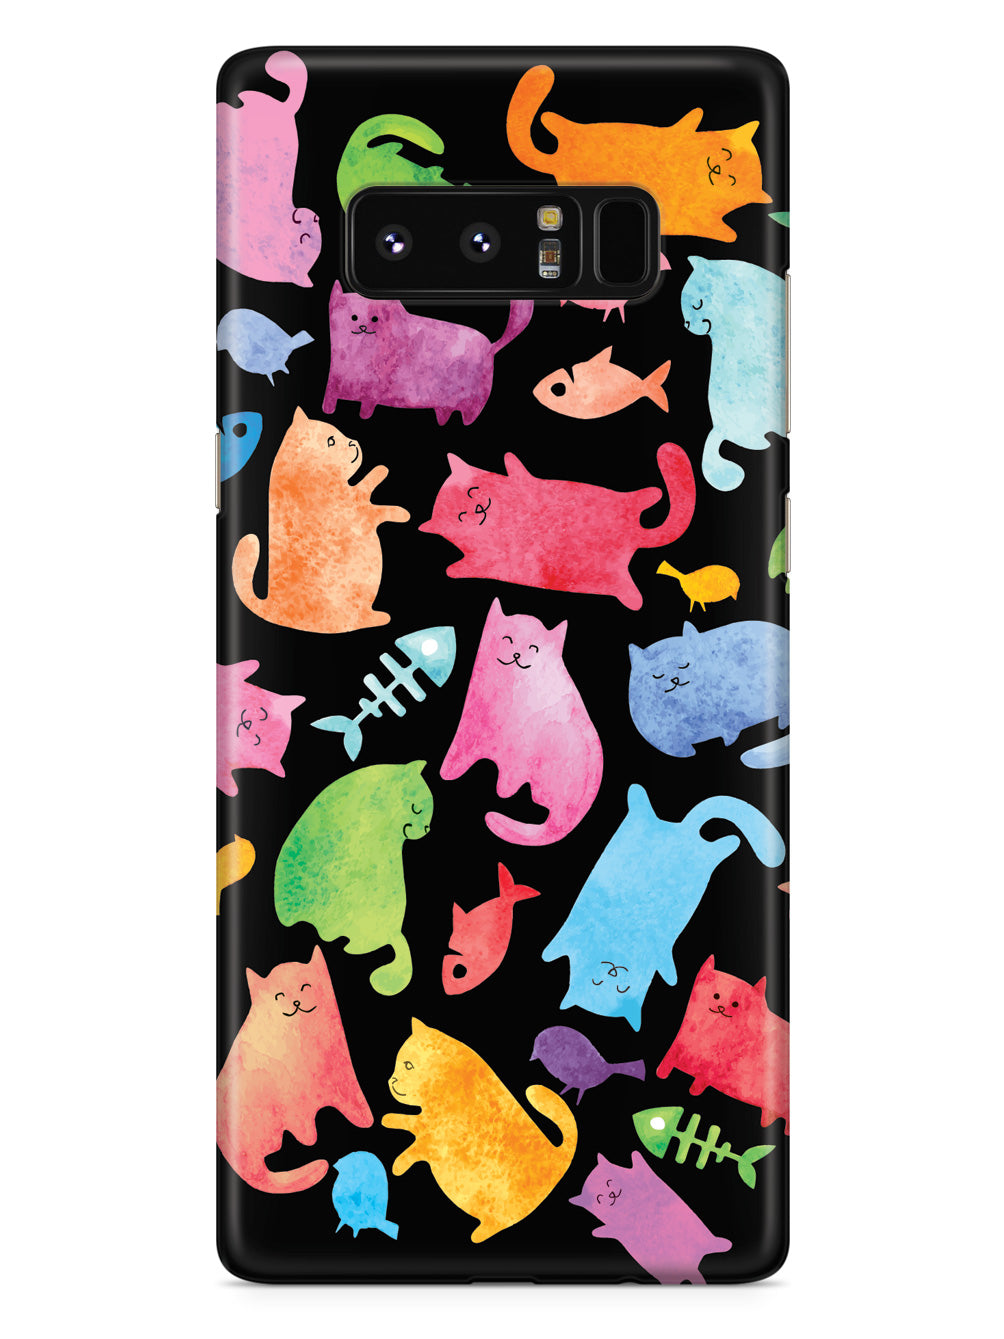 Watercolor Cats - Black Case